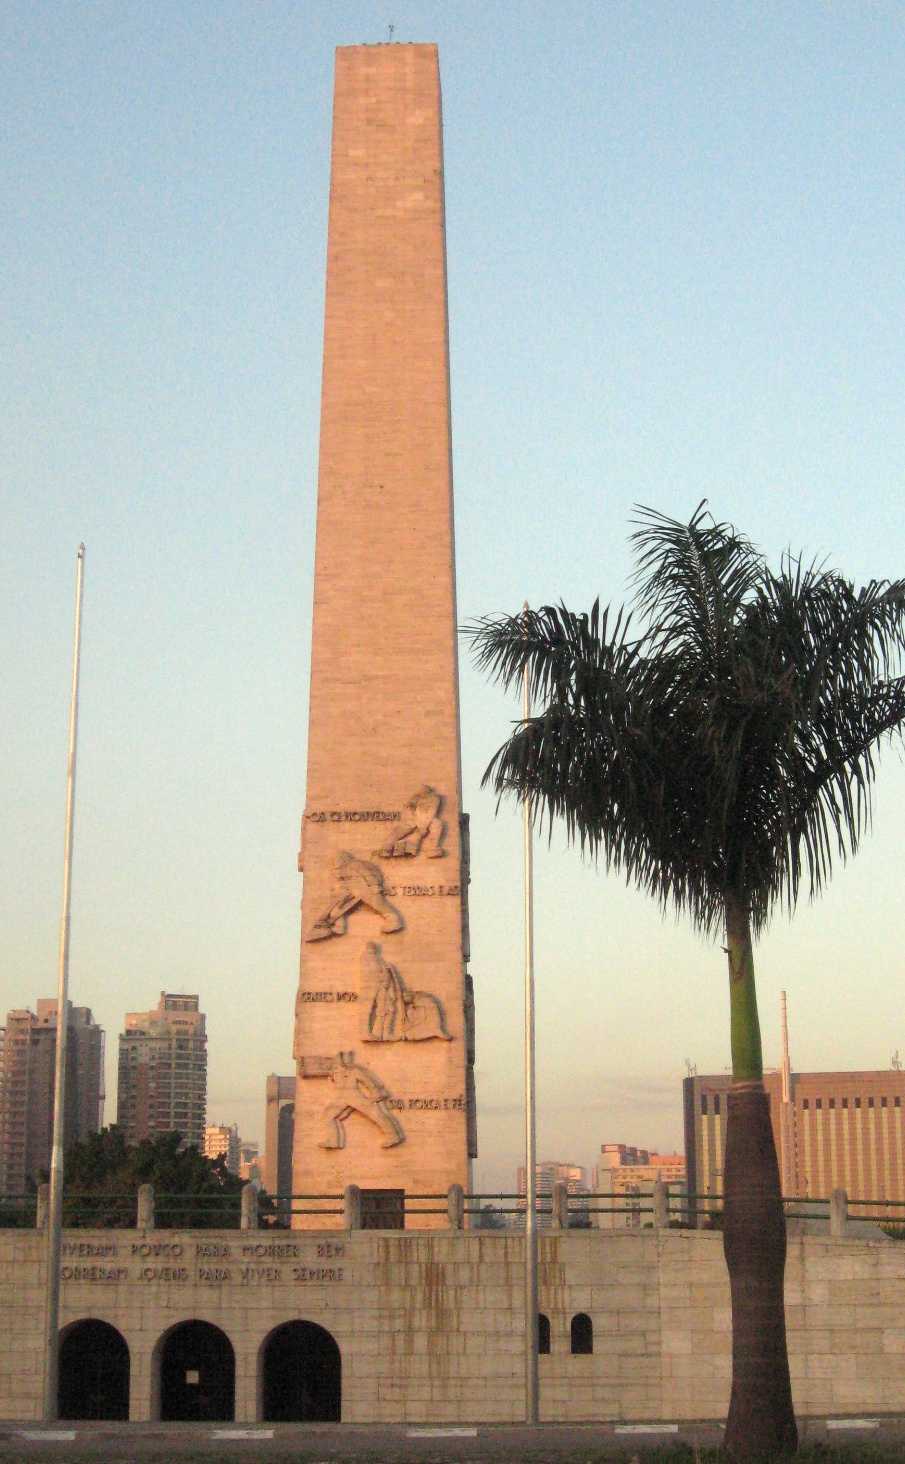 O Obelisco aos Herois de 32--This obelisk honors rebels who died in 1932 when President Vargas crushed resistance to his regime.